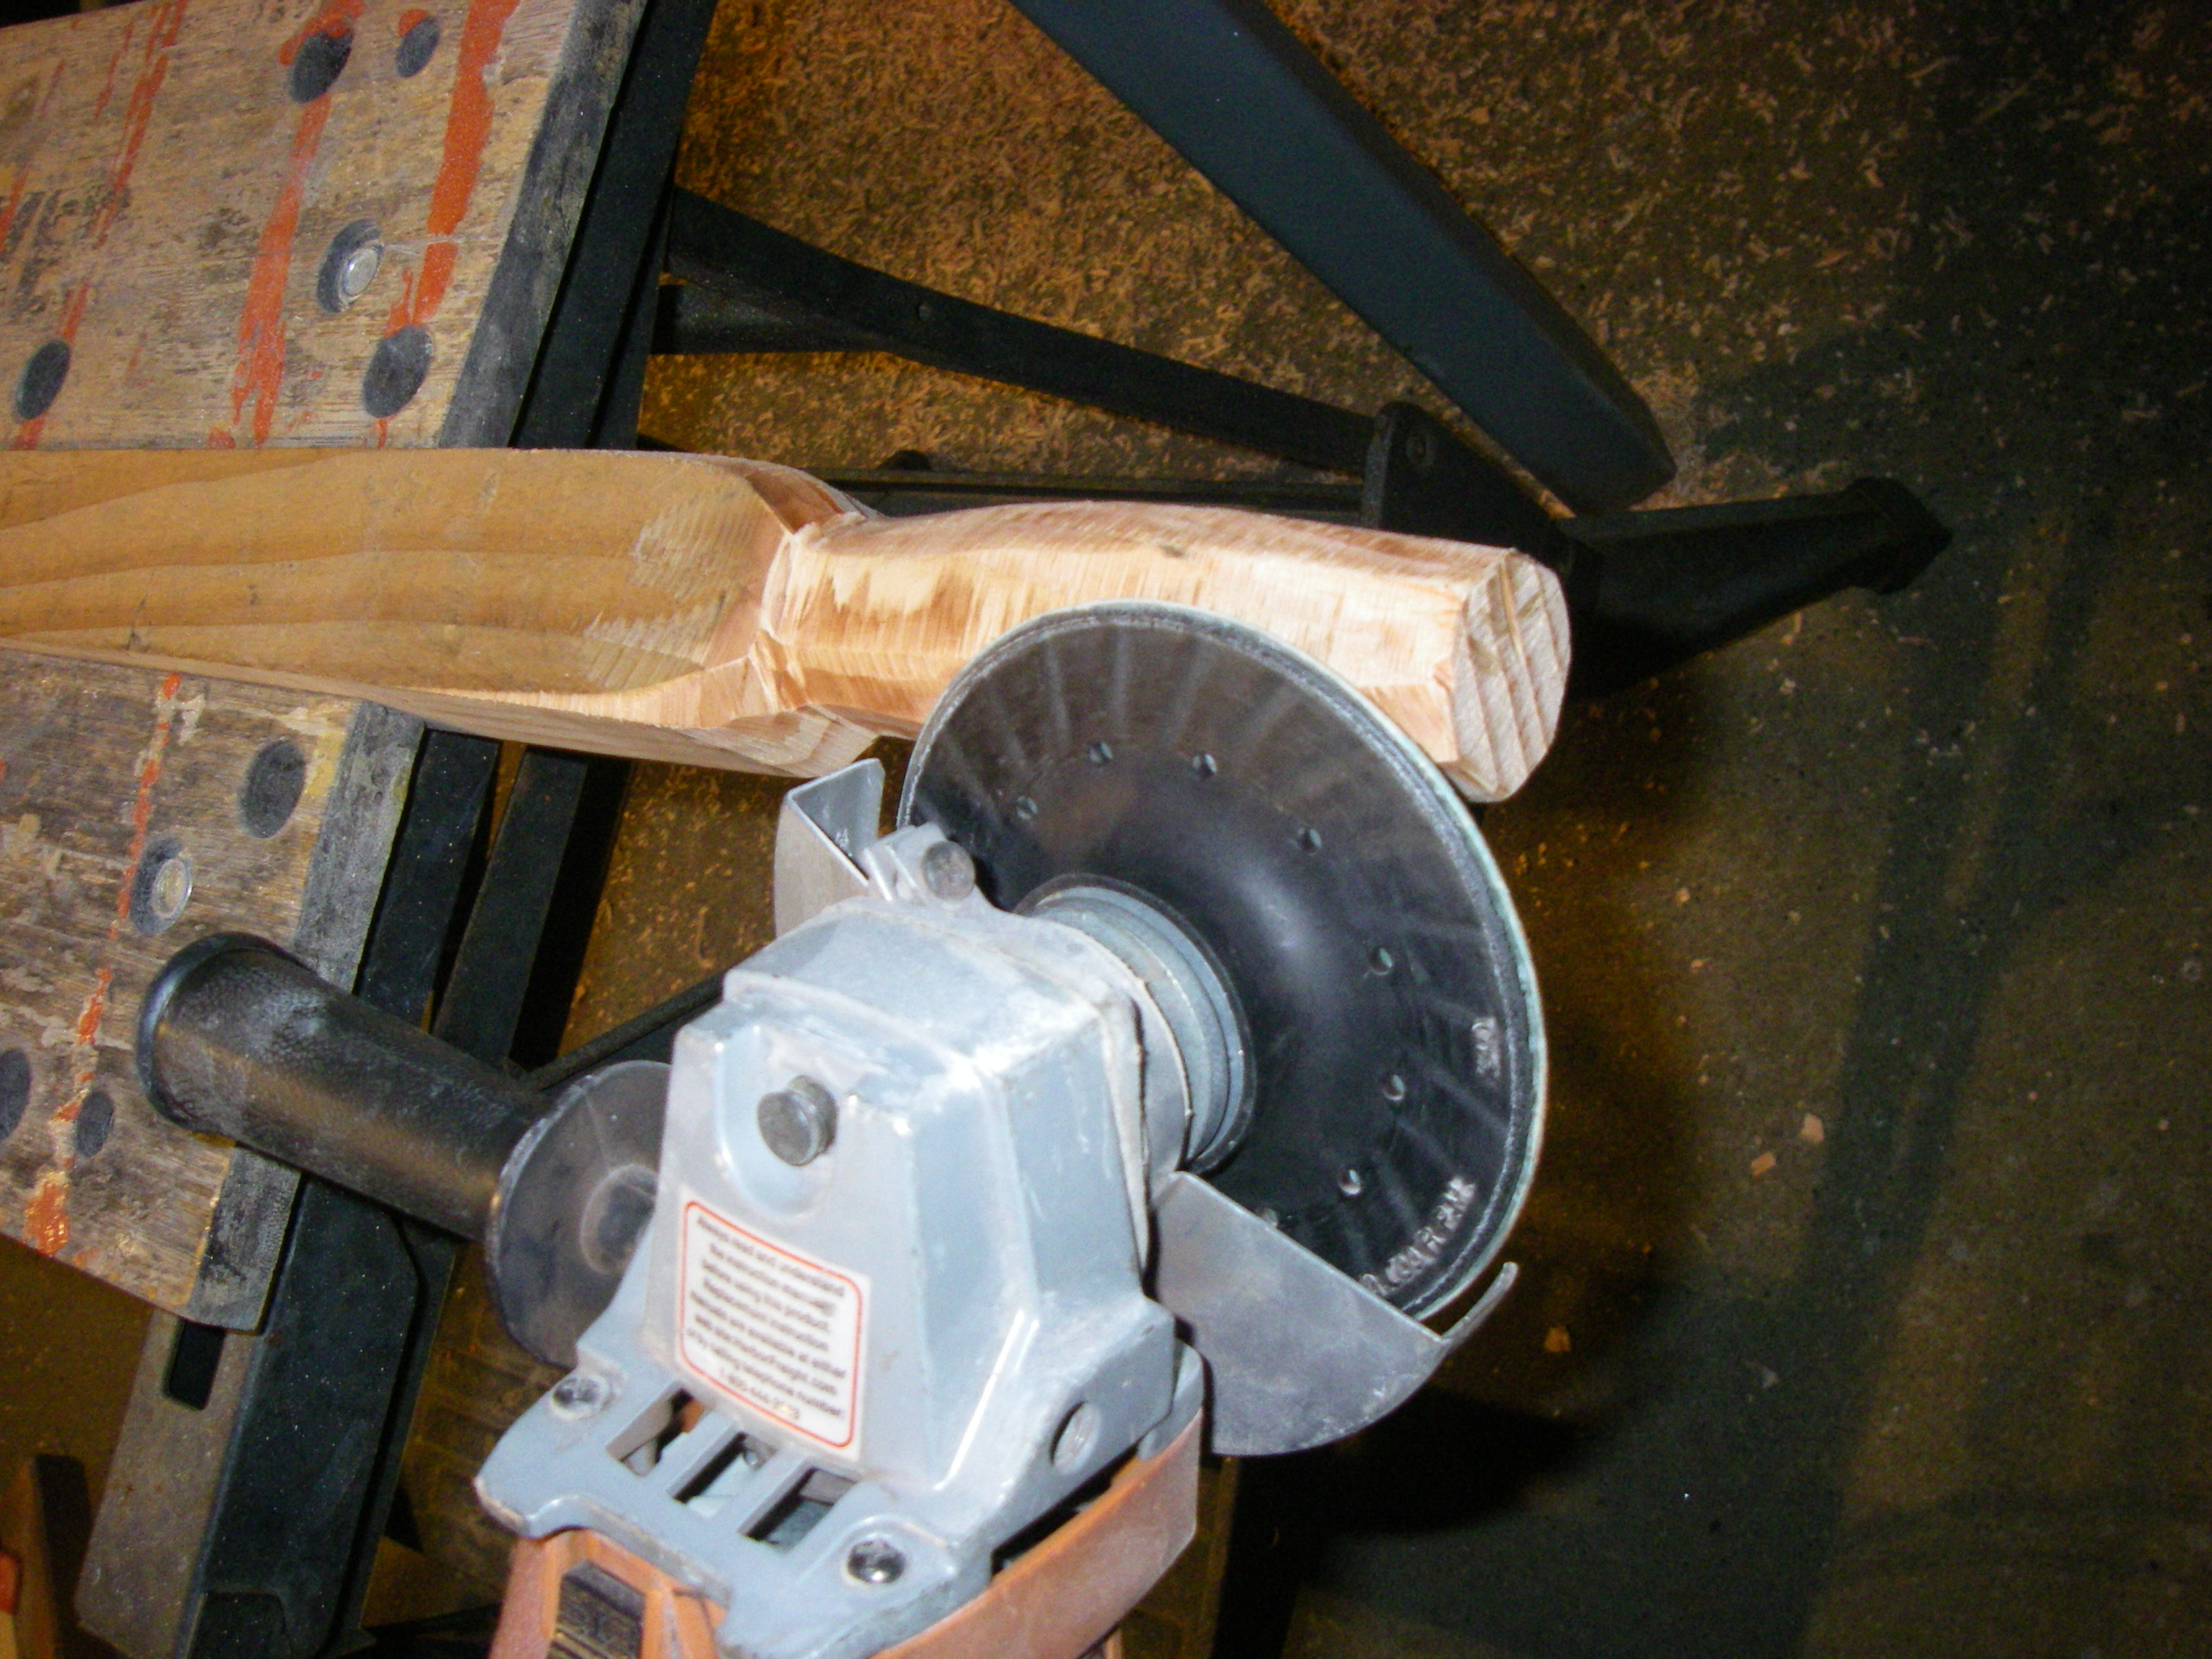 Picture of Finish Shaping the Handles